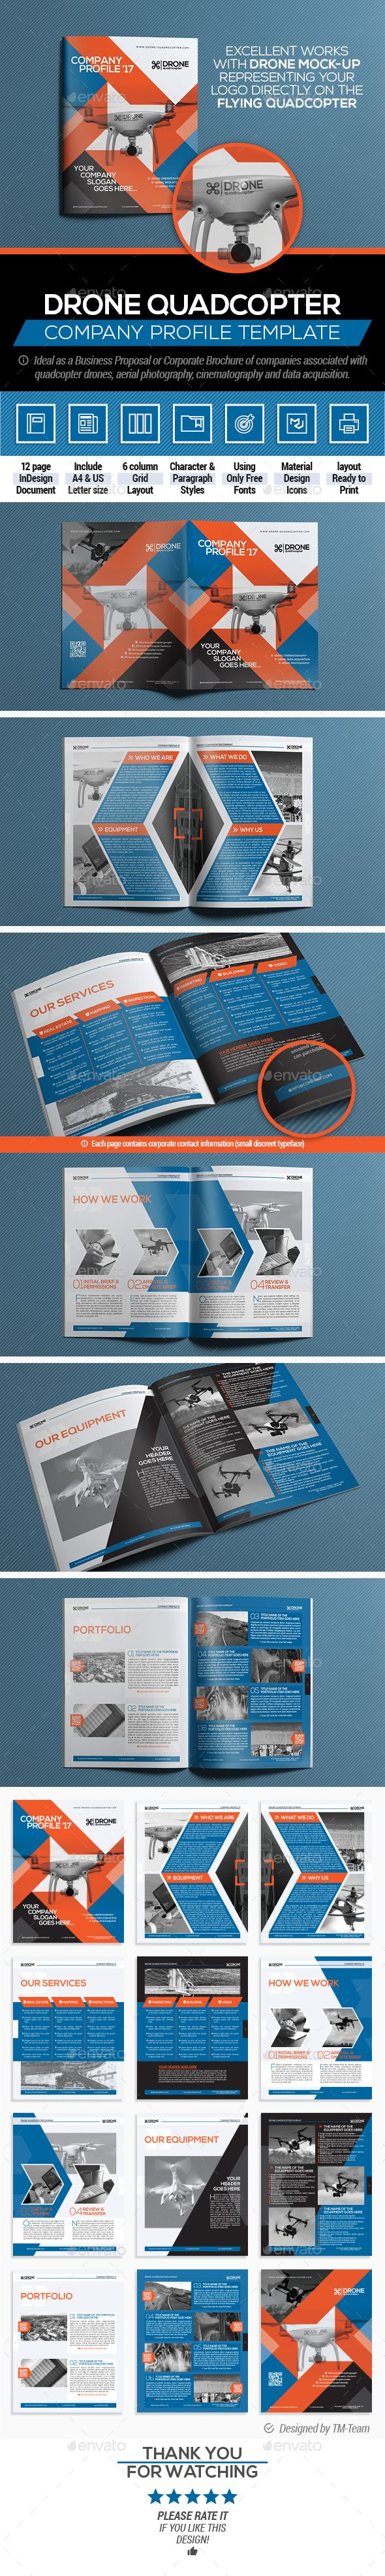 Drone Quadcopter - Company Profile   Business Proposal Template InDesign INDD